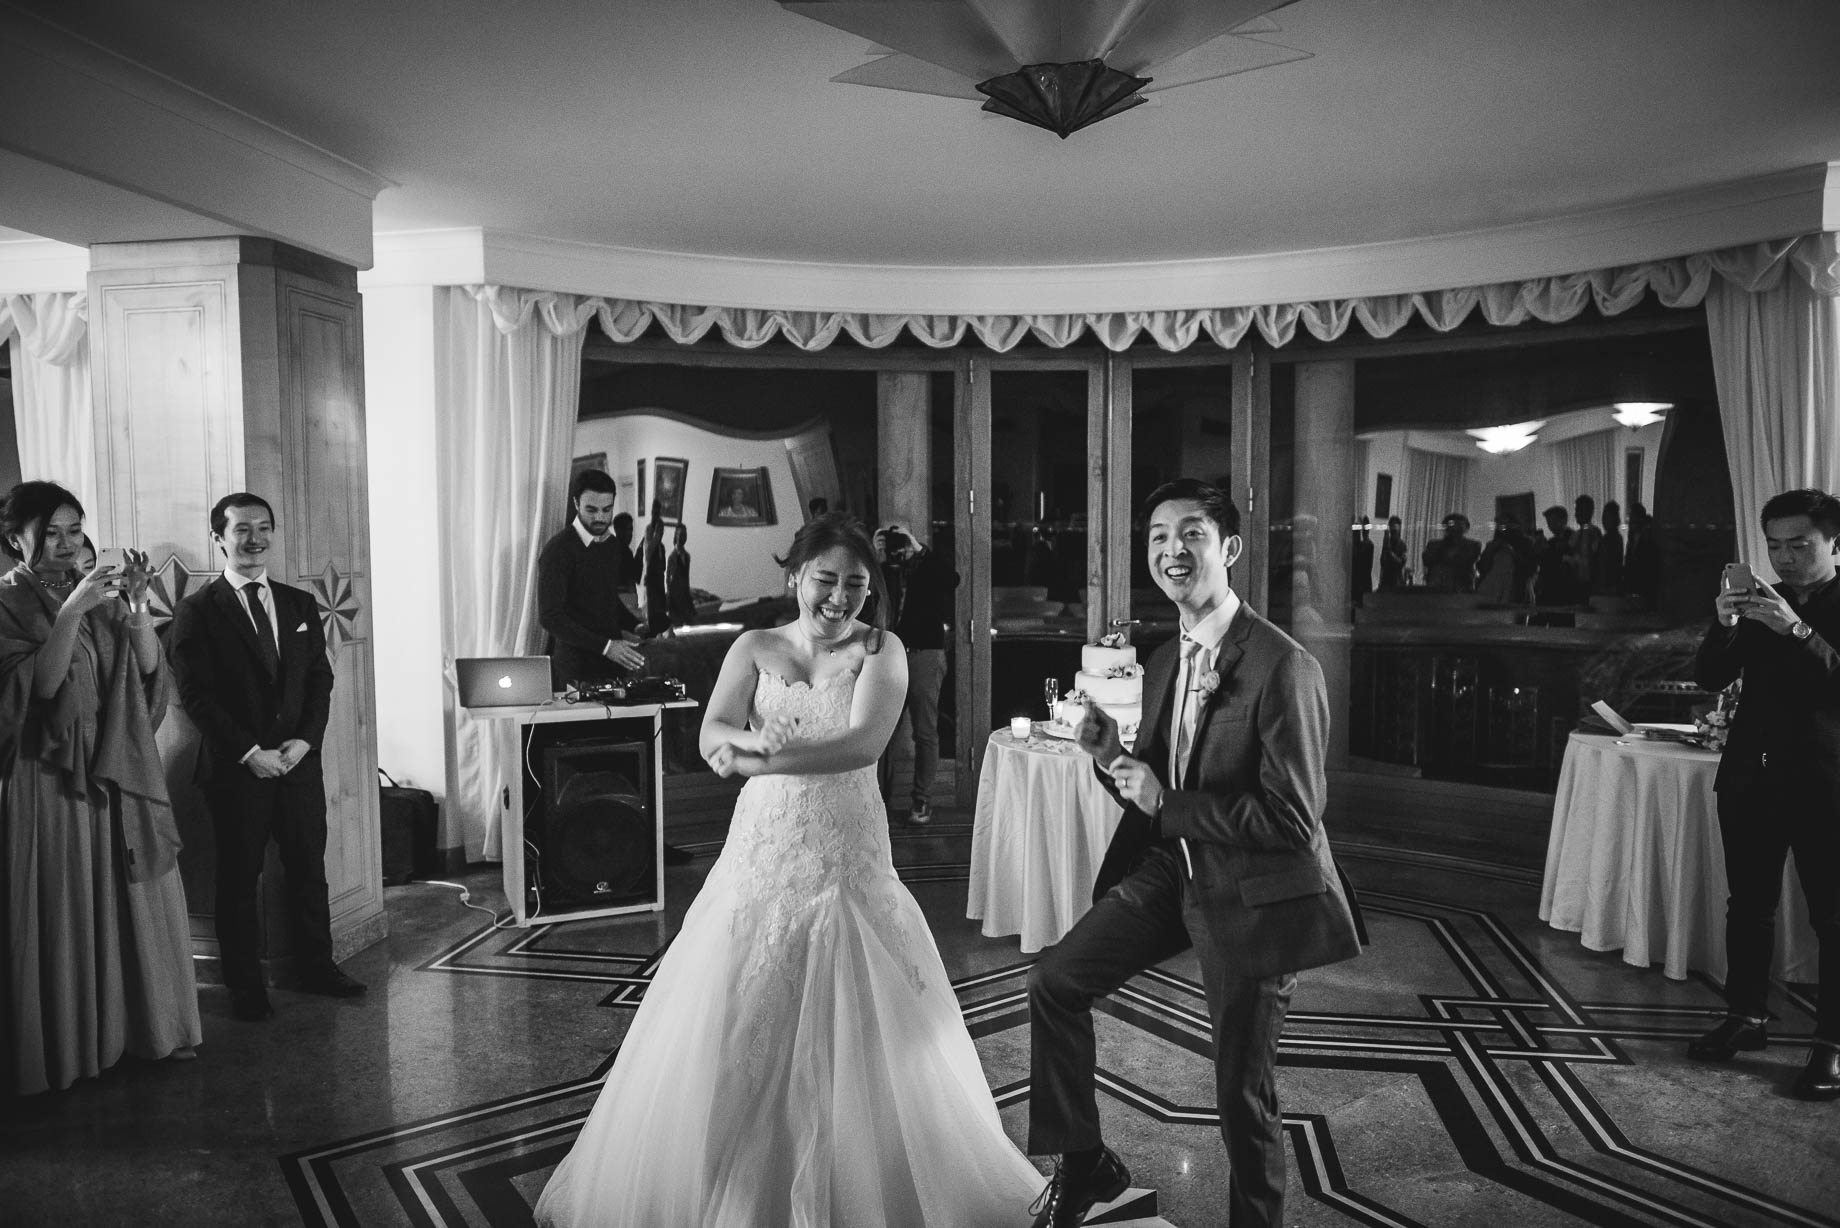 Sorrento wedding photography - Gloria and Eric (181 of 211)